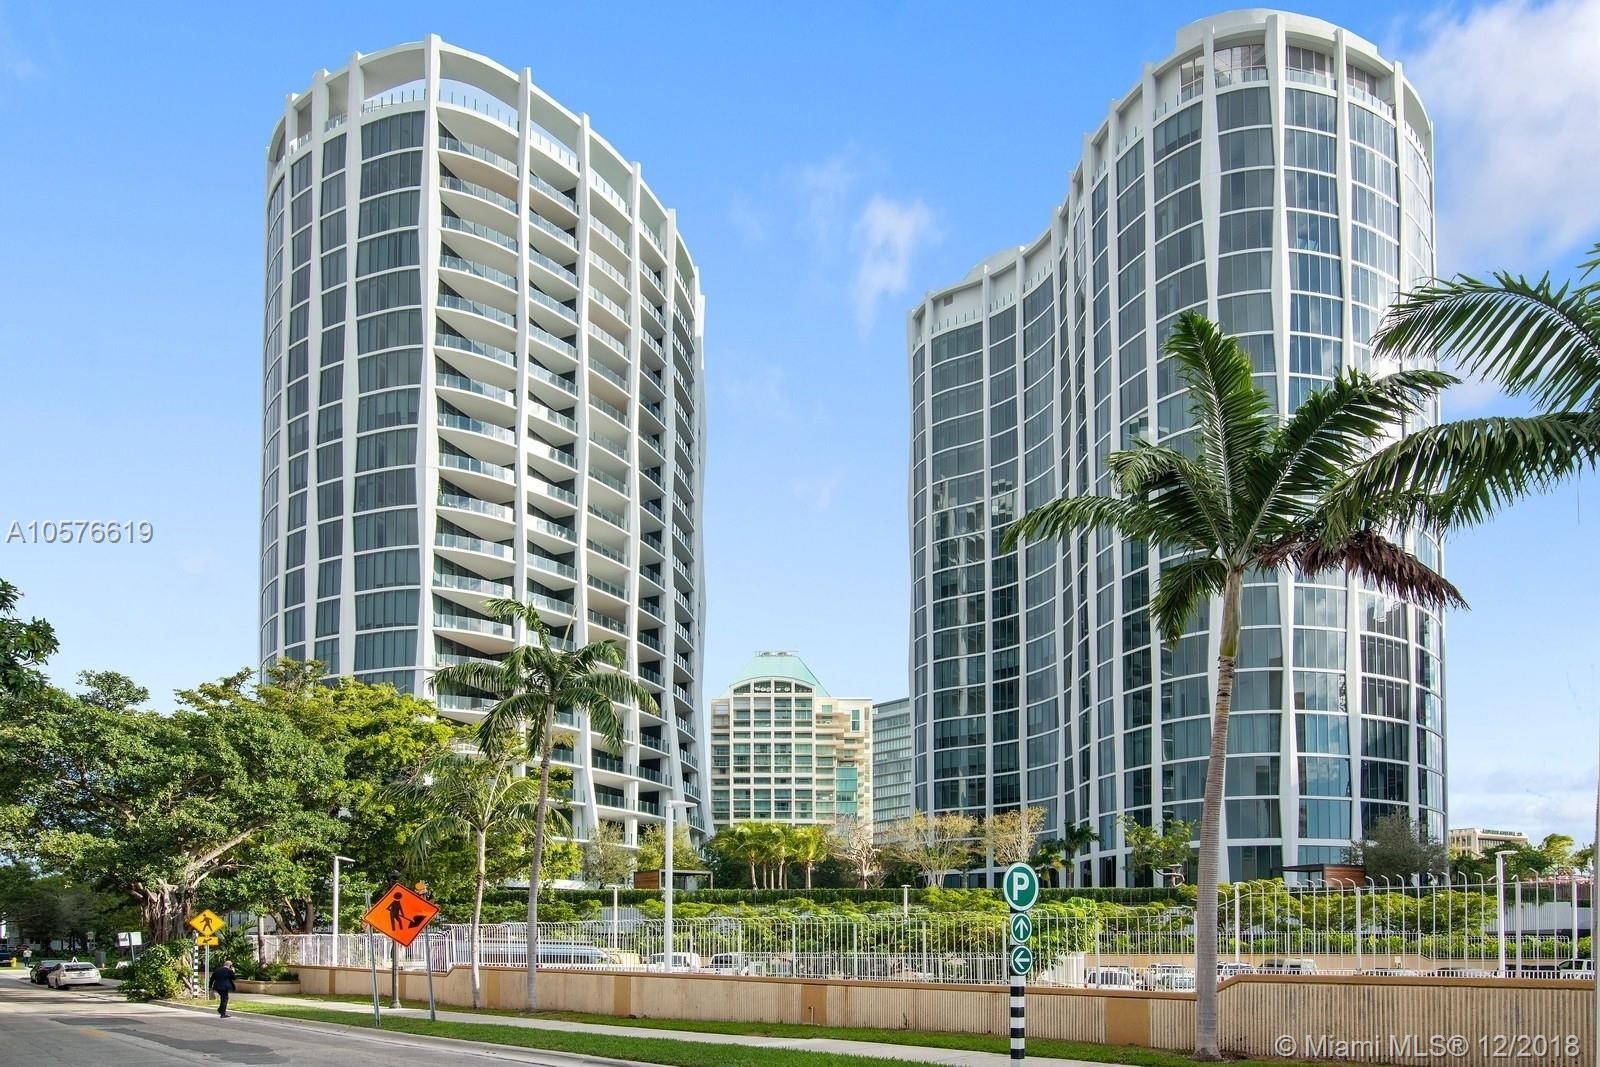 Unique Floor Plan! Two units combined! 3 Suites + Powder Room (2 master suites) approximate 1,886SqFt under AC. 10 foot floor to ceiling glass over looking Coconut Grove. Brown porcelain wood  throughout the unit. Terrace has white wood porcelain. Expansive dinning and entertaining area. Bedrooms with en suite bathrooms; his and hers vanities. kitchen has light oak wood trim, paonazzo marble, bronze mirror backsplash and off-white glass Italian cabinetry. kitchen with island, wolf & subzero appliances. Unit comes with 2 parking spaces.